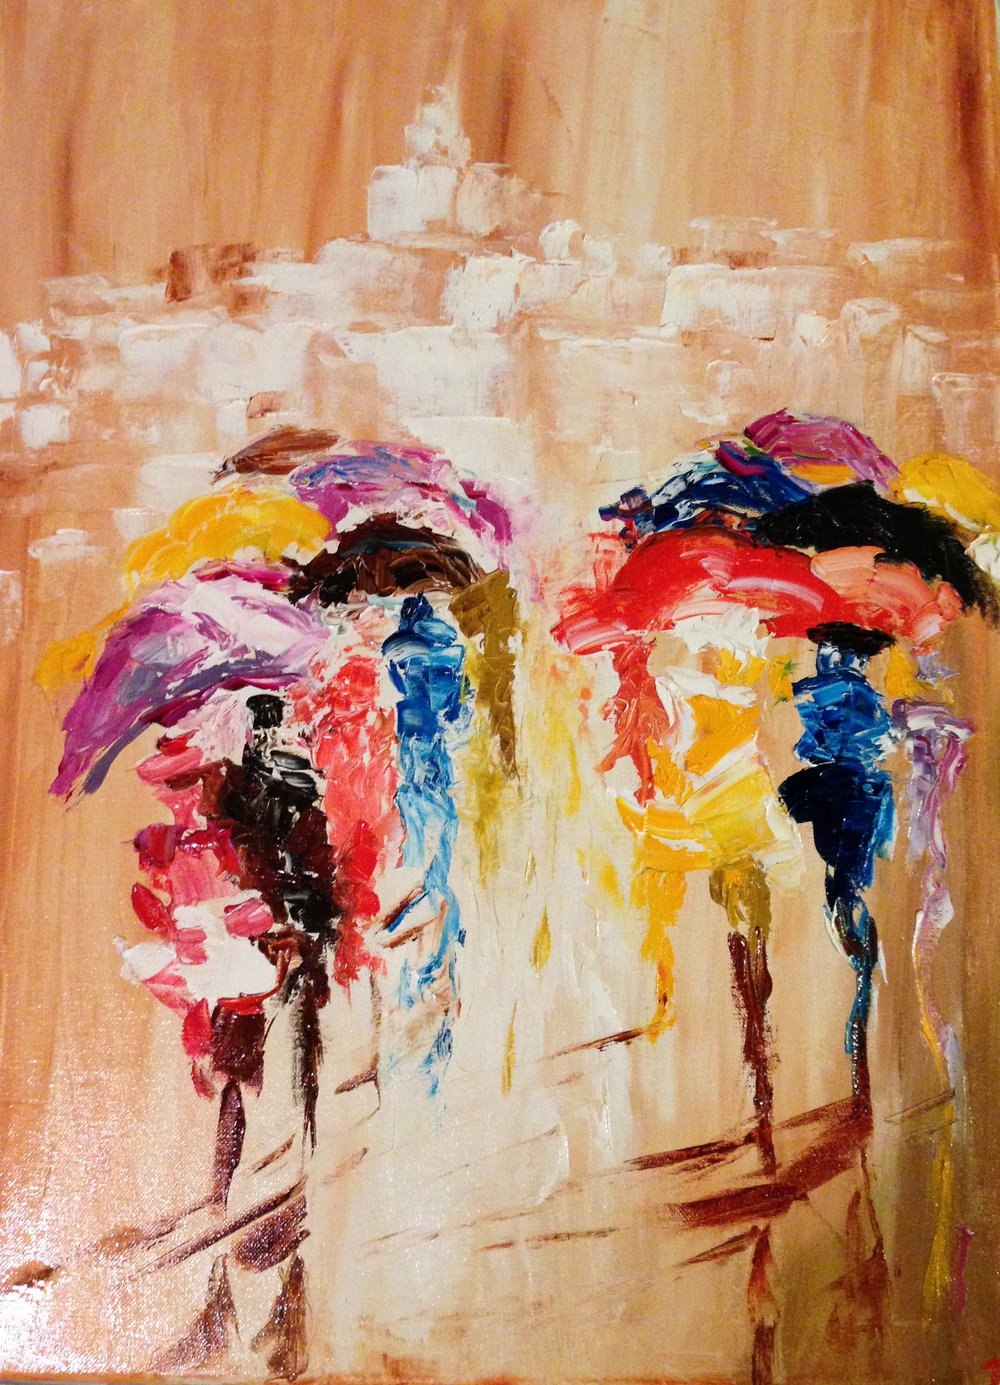 UMBRELLAS - SOLD